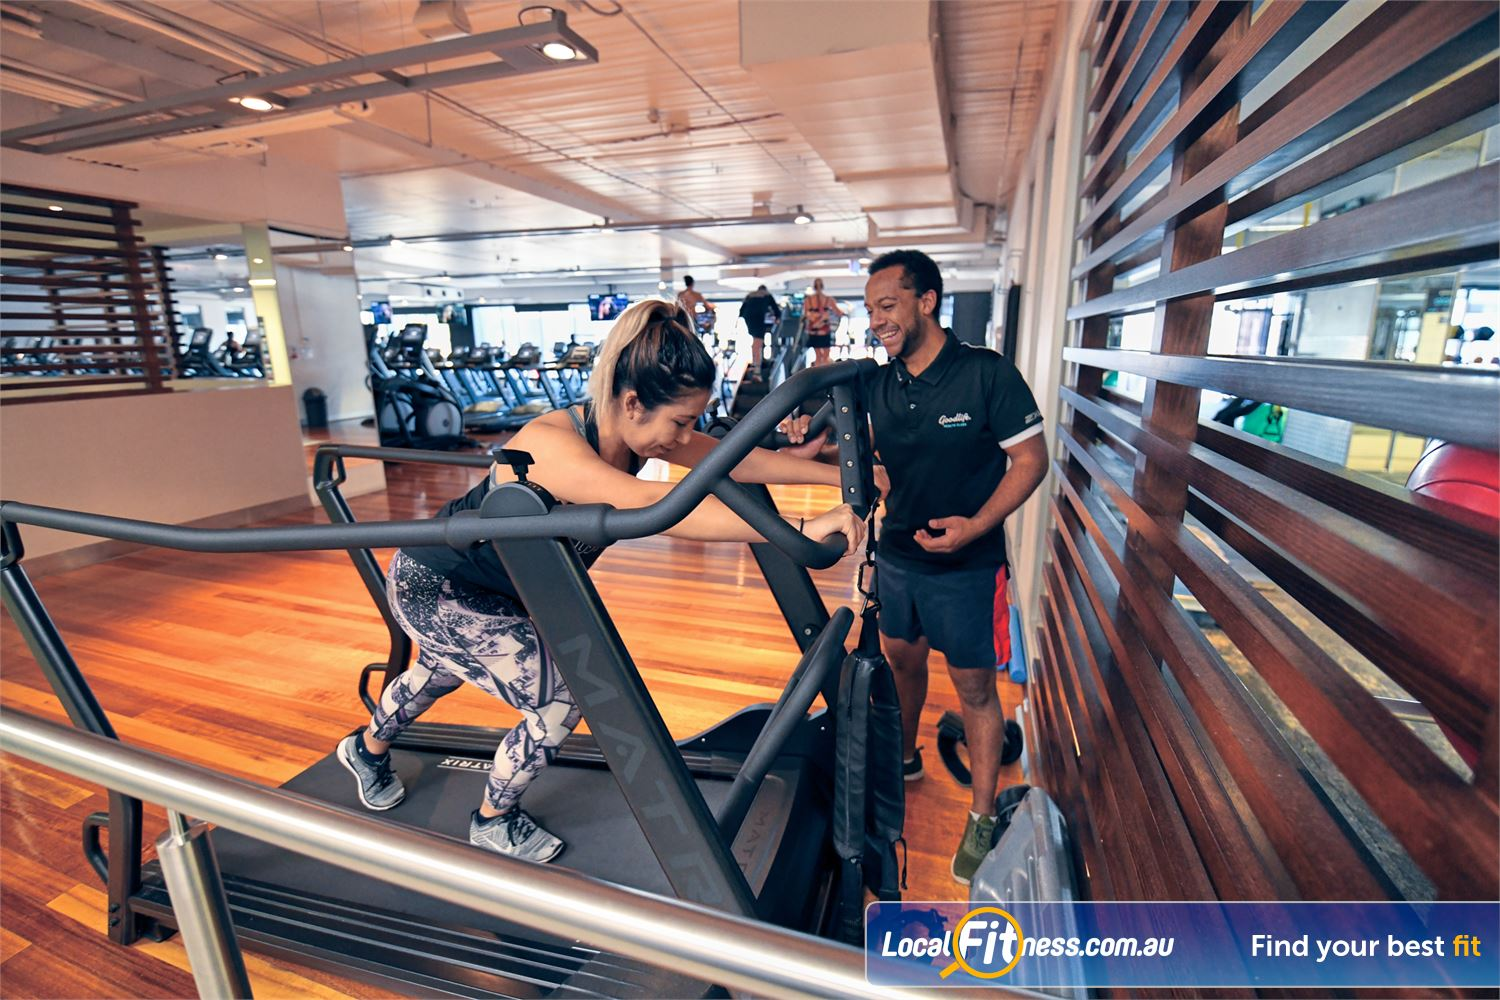 Goodlife Health Clubs Near Bulla The MATRIX S-drive performance trainer is great for functional cardio training.